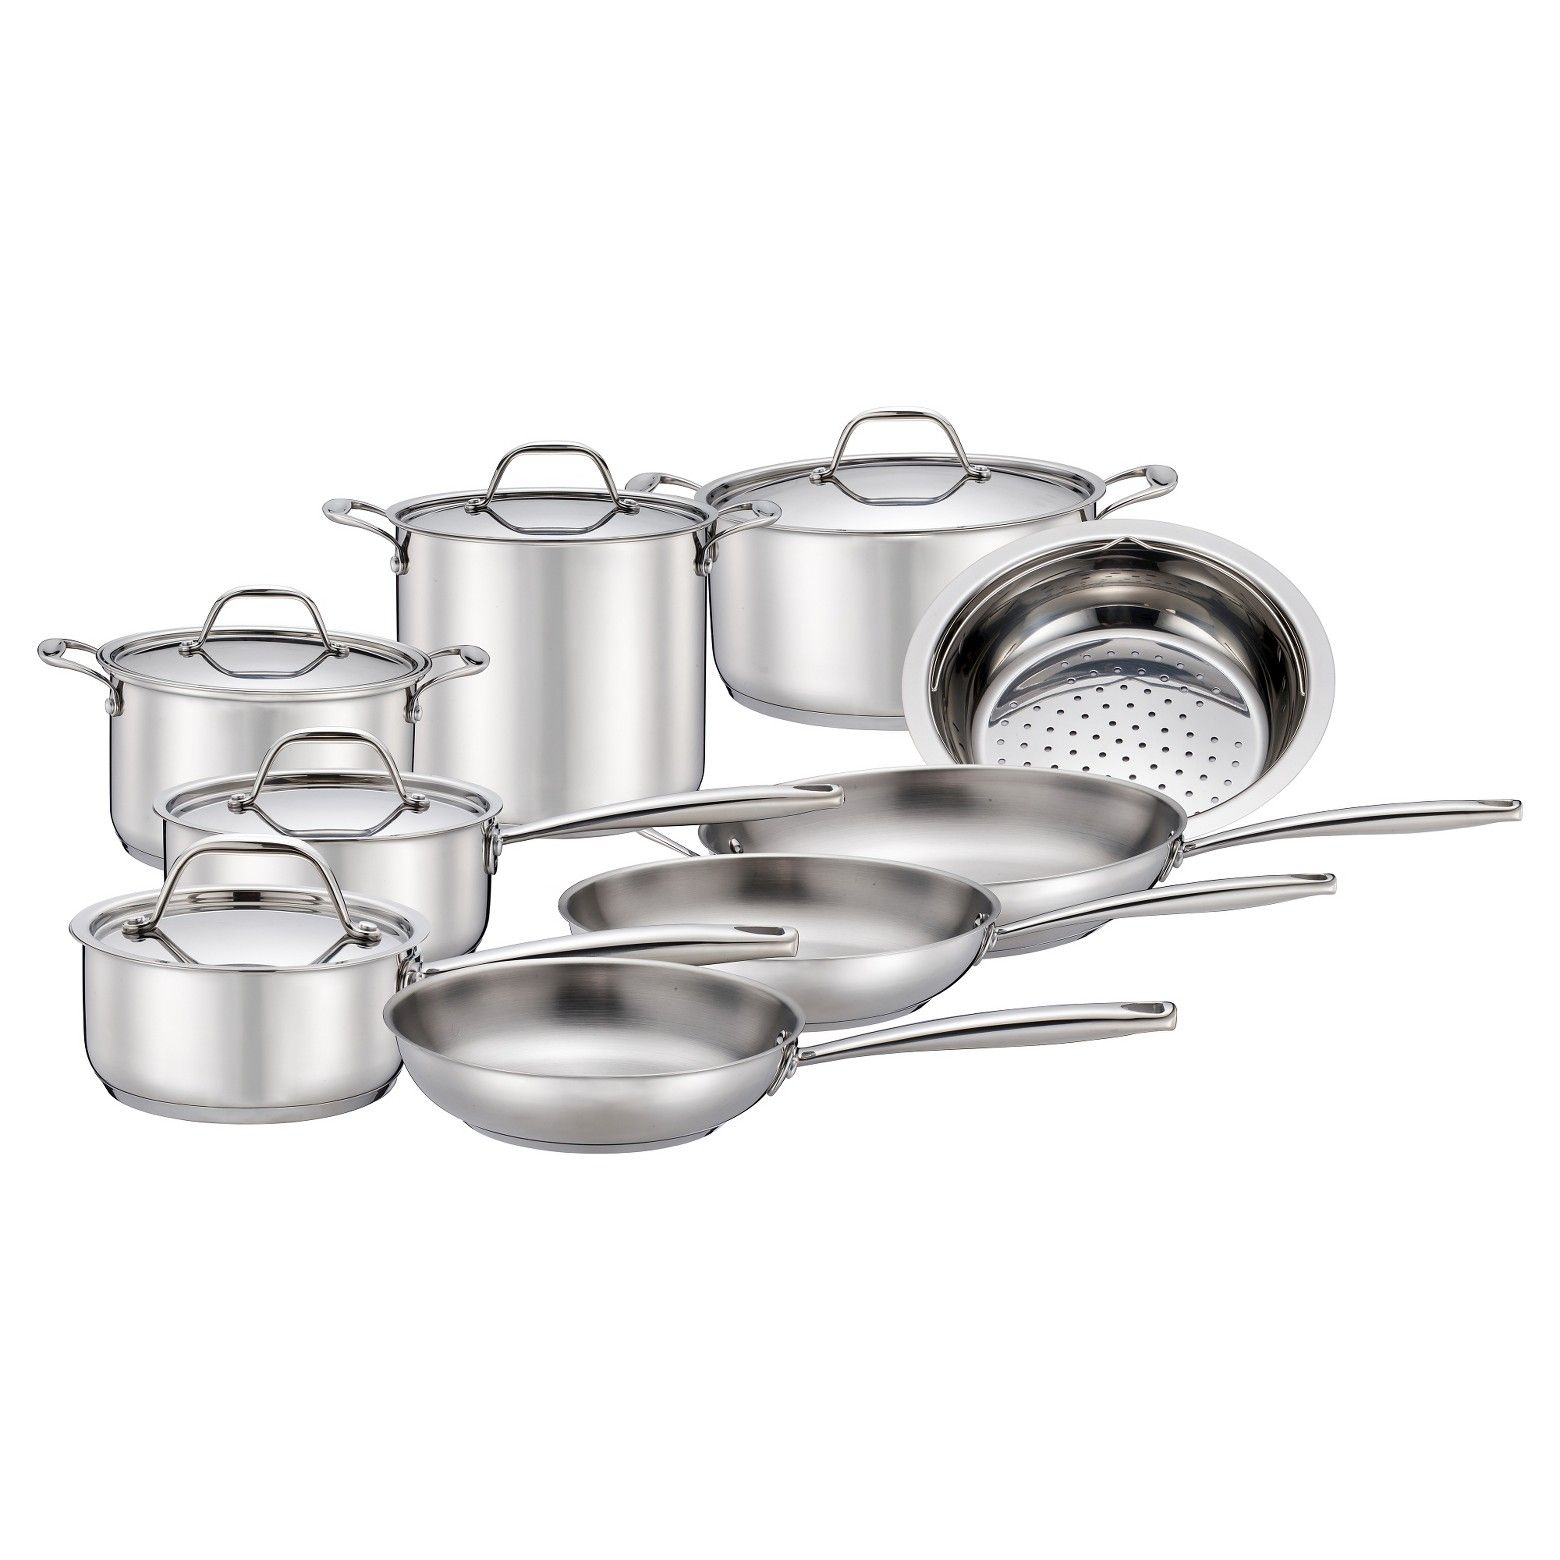 Threshold 14 Pc Stainless Steel Cookware Target 129 99